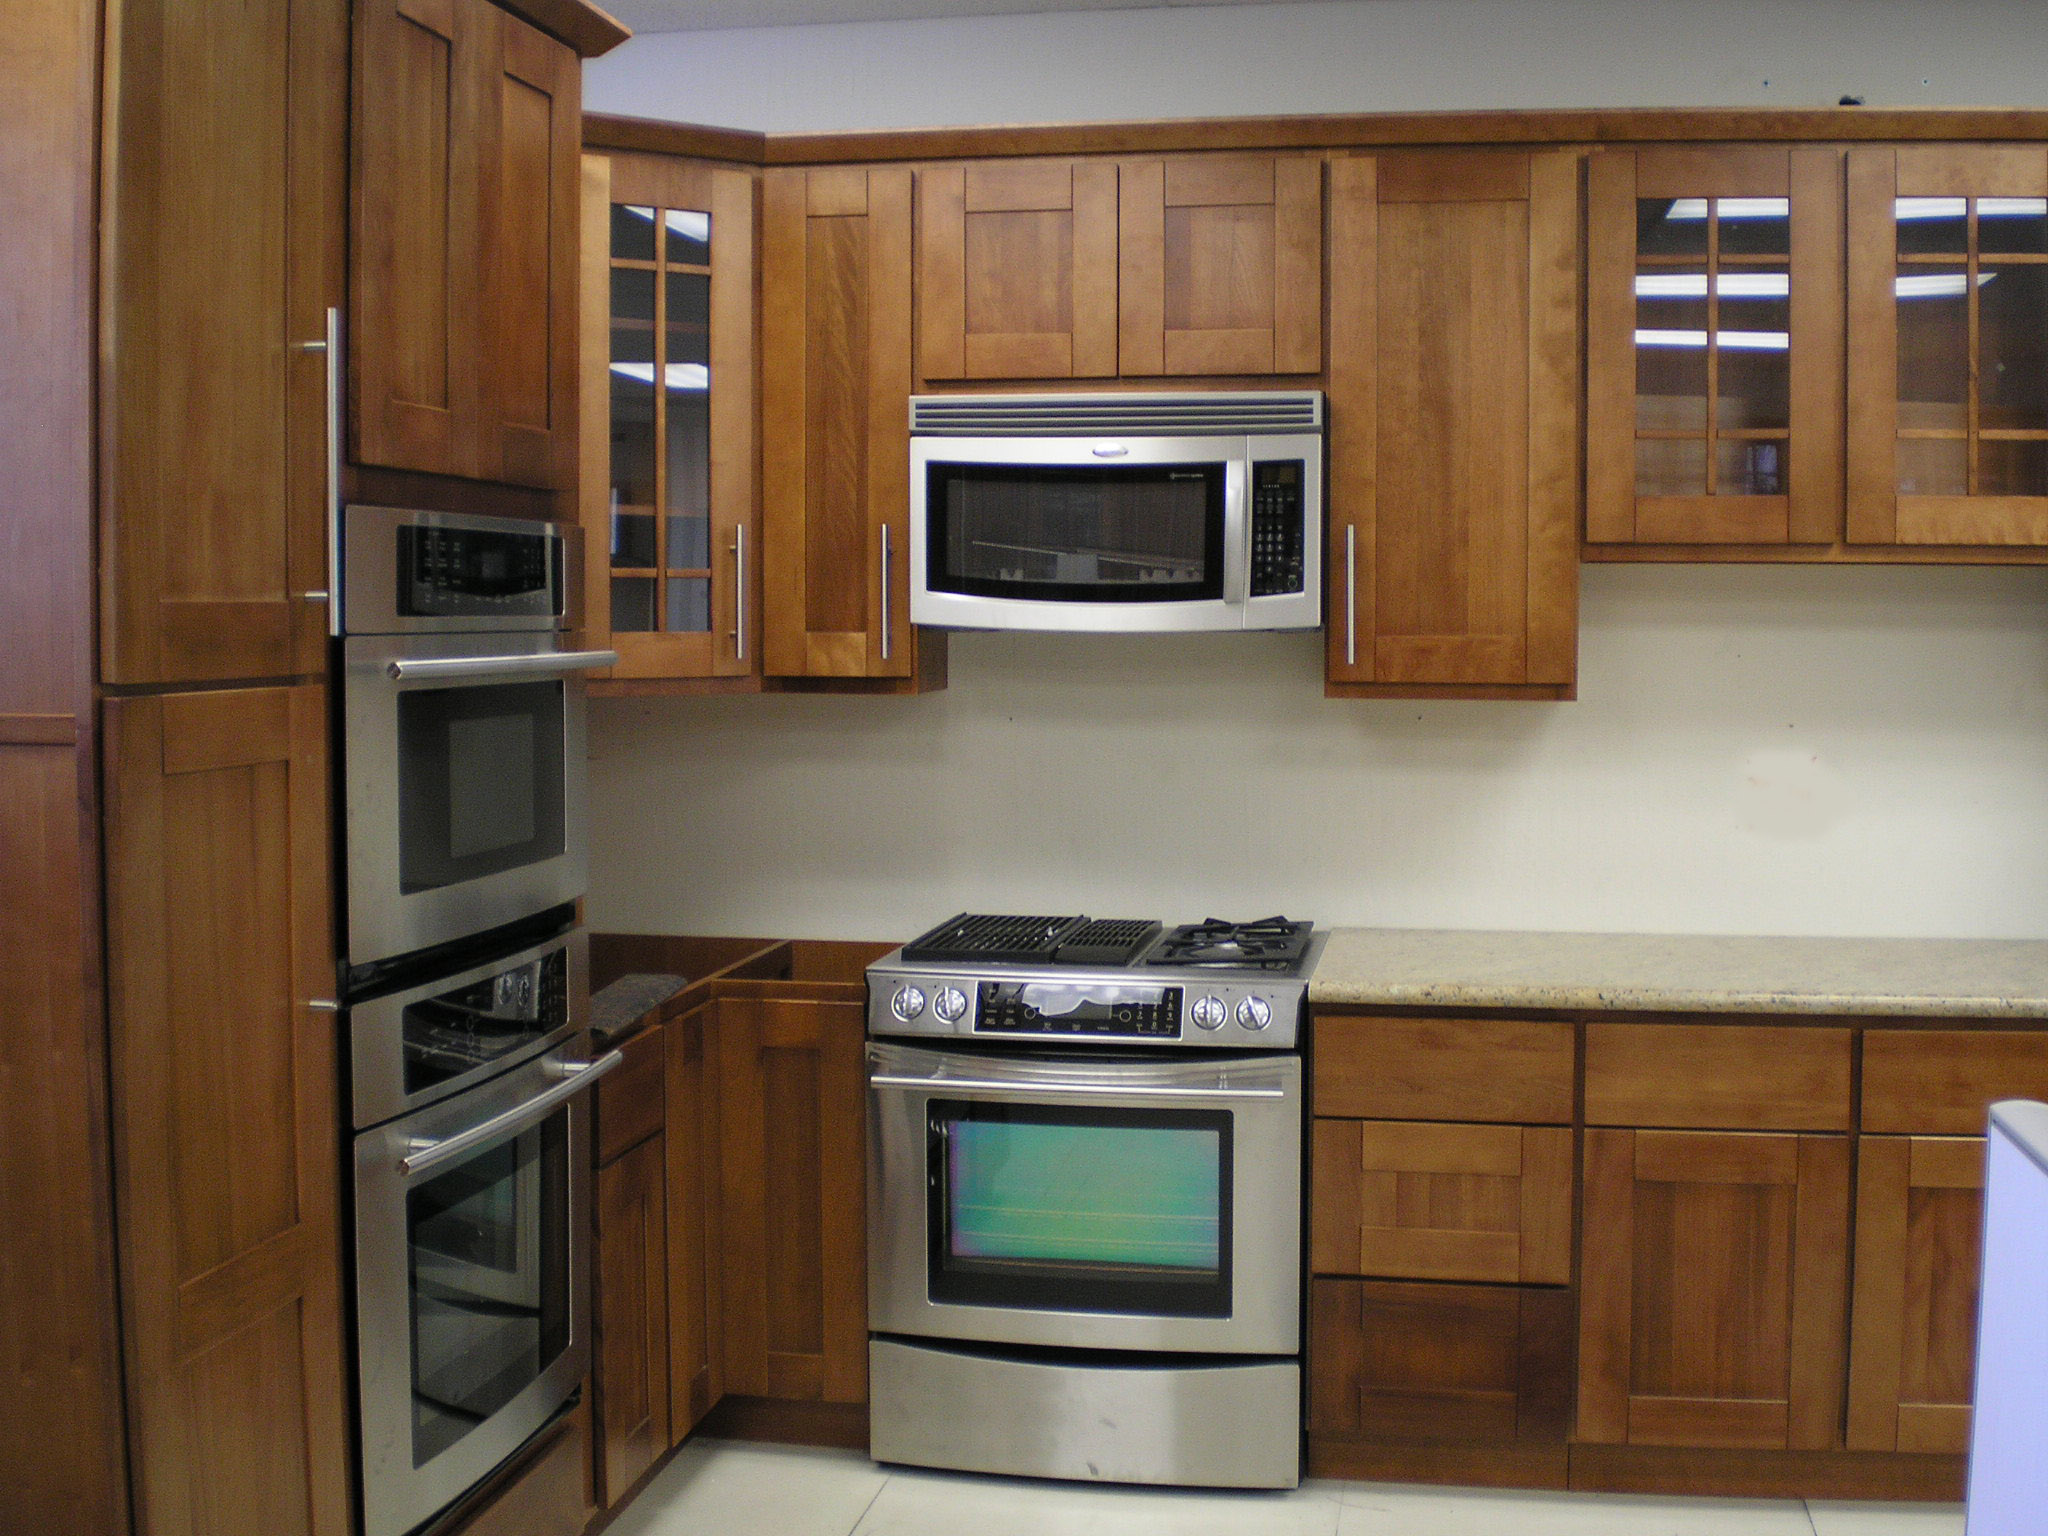 Kitchen Cabinets Thomasville | Thomasville Cabinet | Thomasville Cabinets Part 83